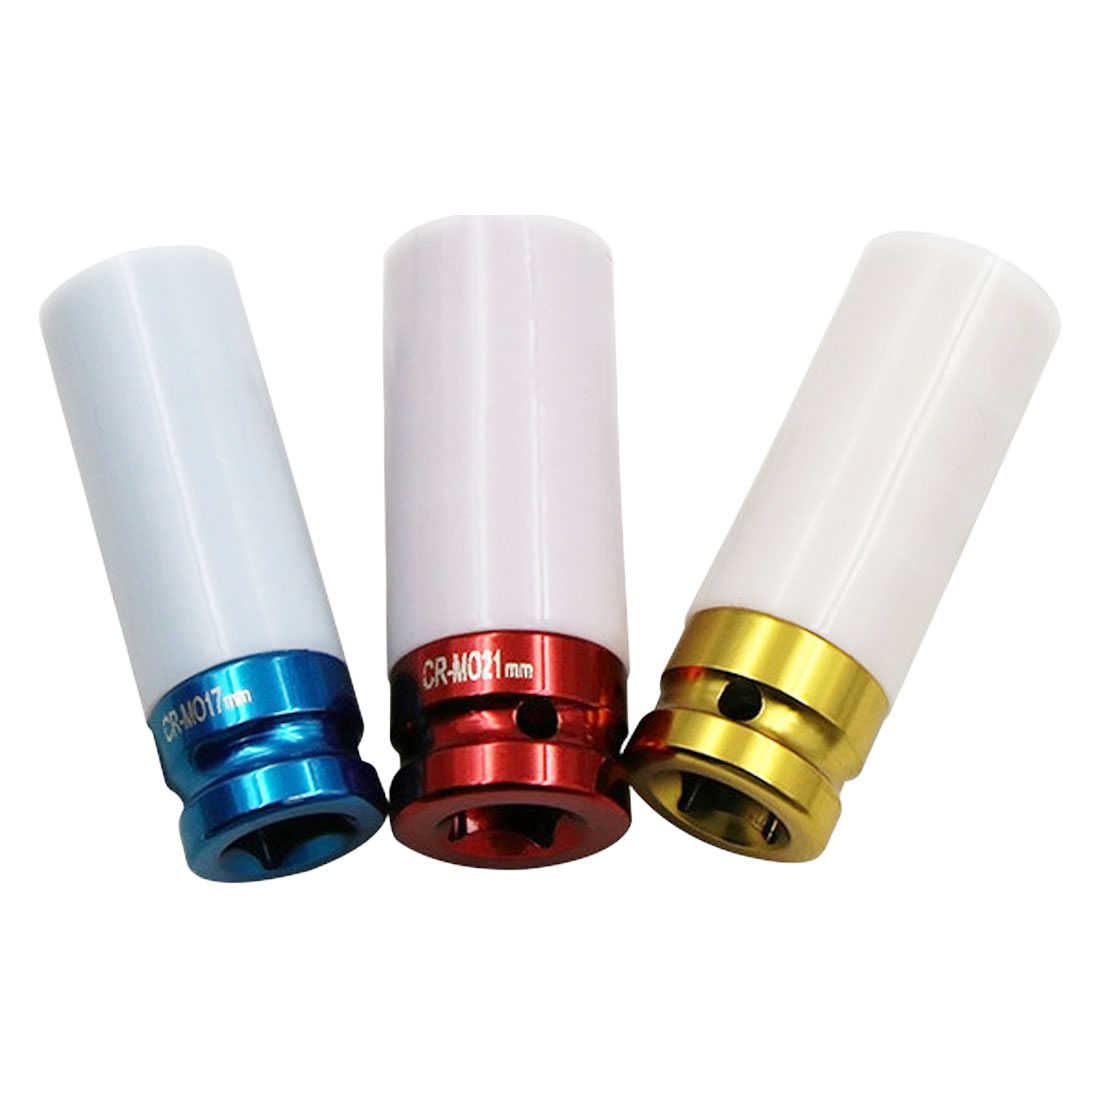 1Pcs 17 /19/ 21mm Colorful High-carbon Steel Sleeve Tire Protection Sleeve Wall Deep Impact Nut Socket